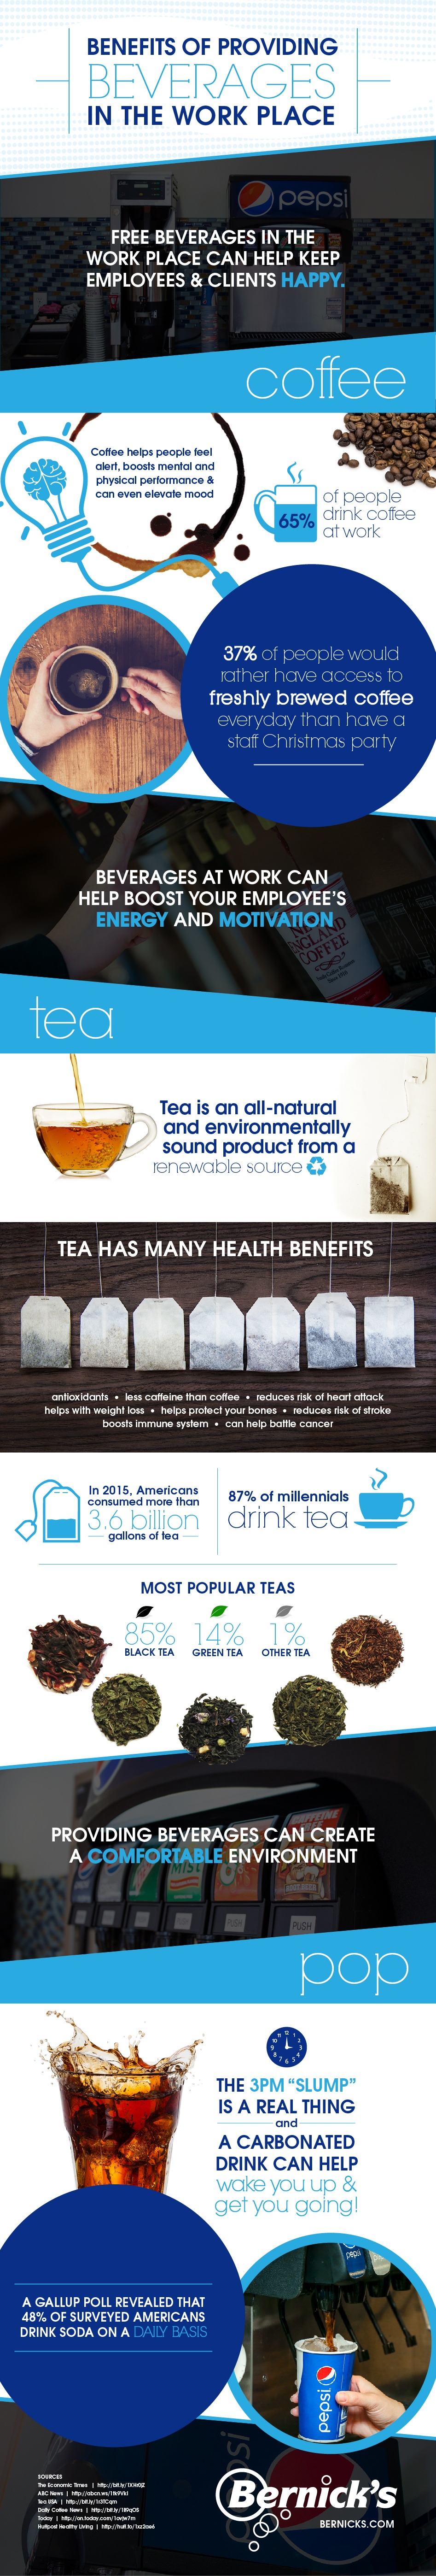 Gov-Corp-Hot-Bev-fountain-Infographic-01.jpeg